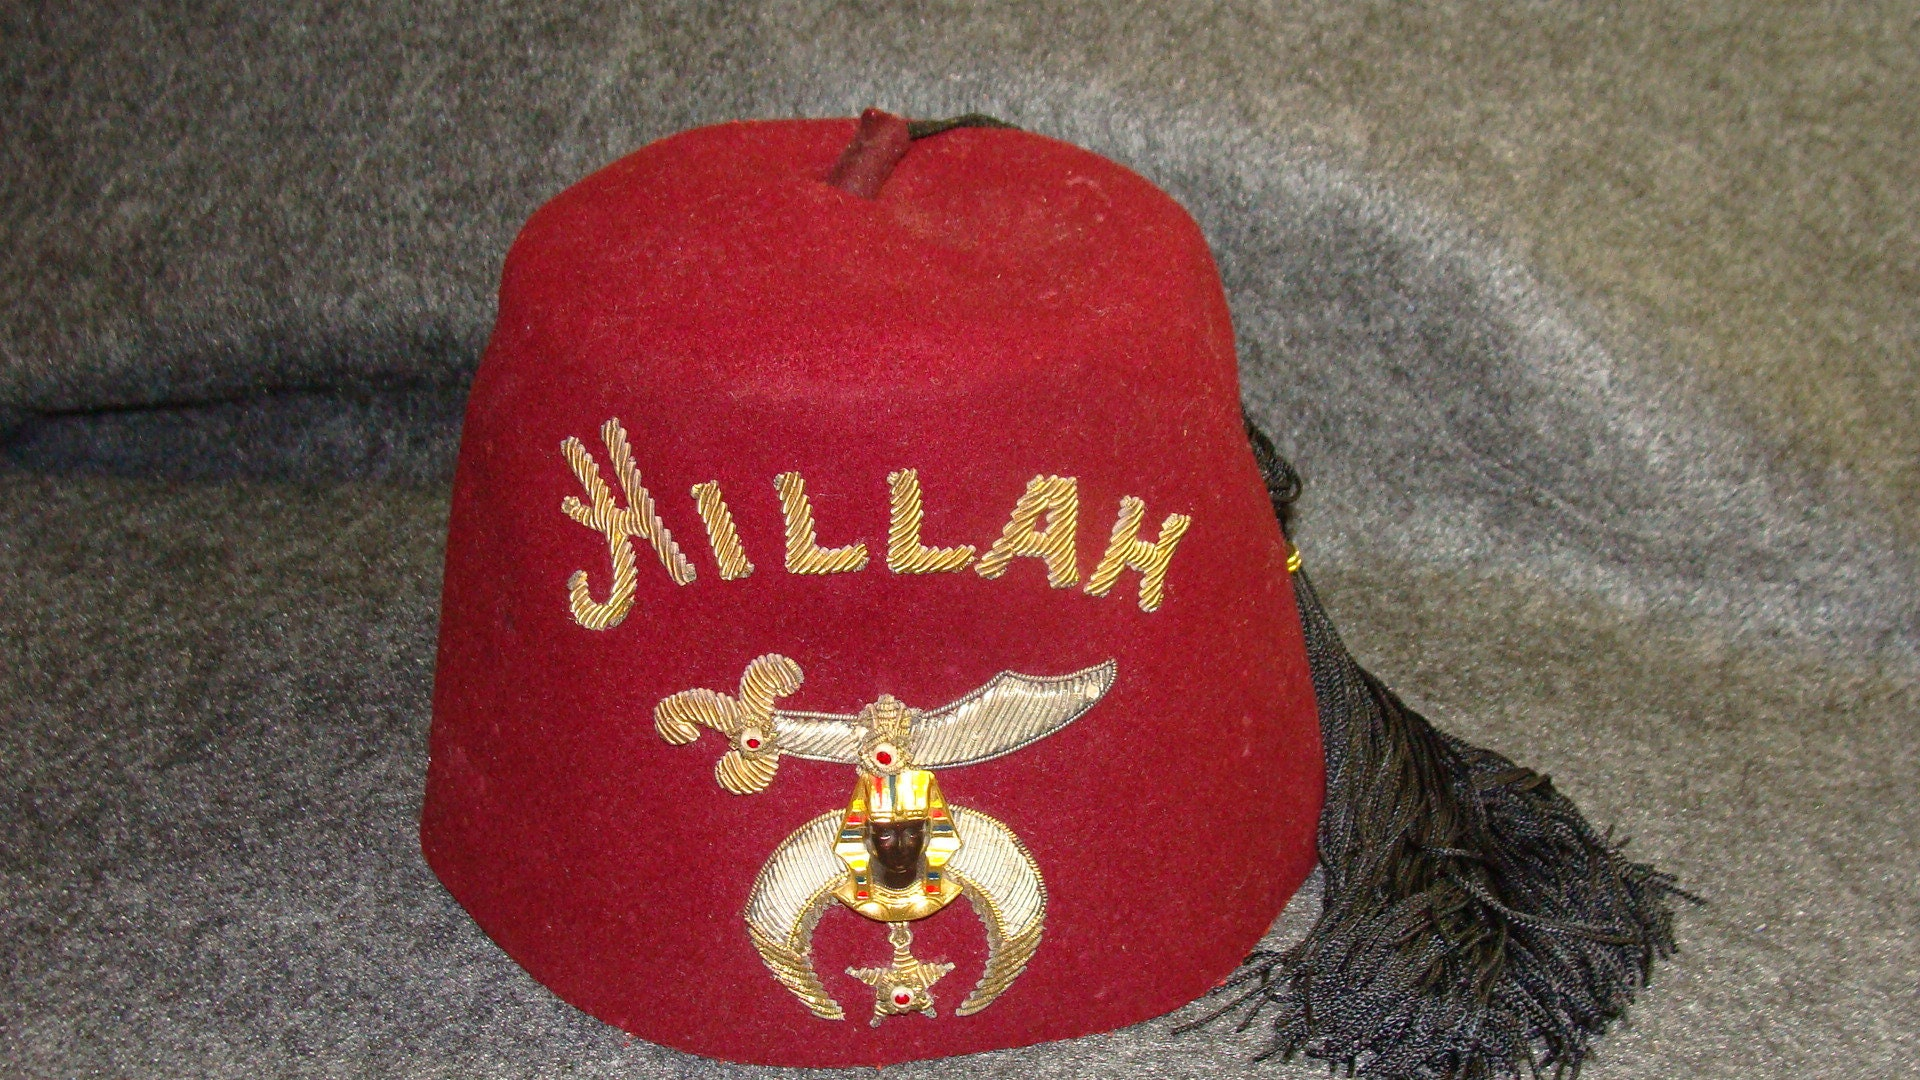 Hillah masonic shriners fez made lou walt etsy jpg 1920x1080 Shriners hat 8339a1510f99